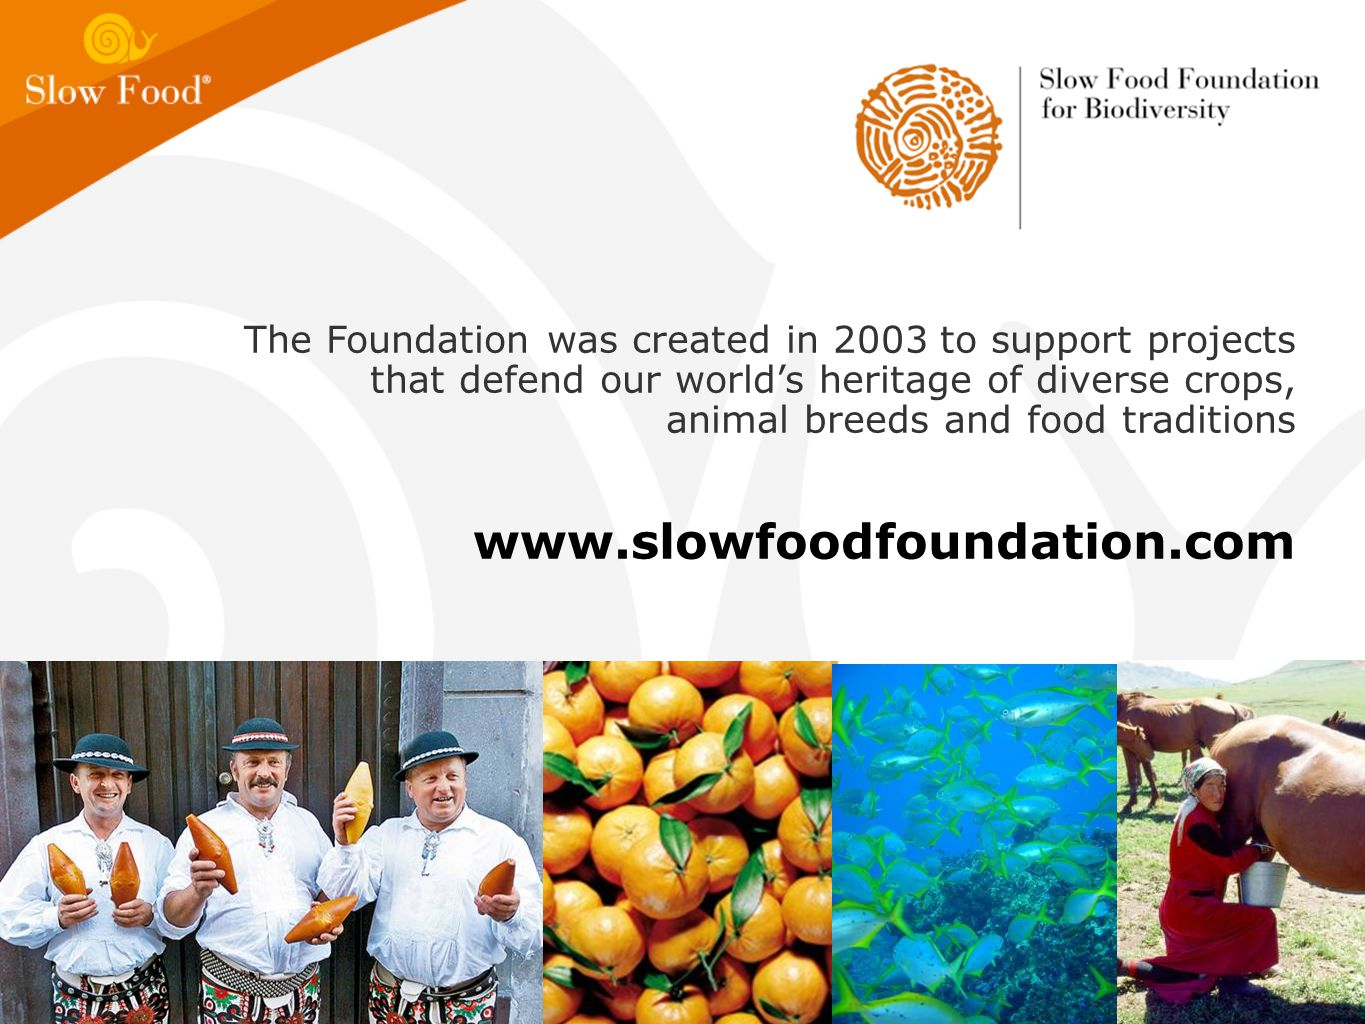 The Foundation was created in 2003 to support projects that defend our world's heritage of diverse crops, animal breeds and food traditions